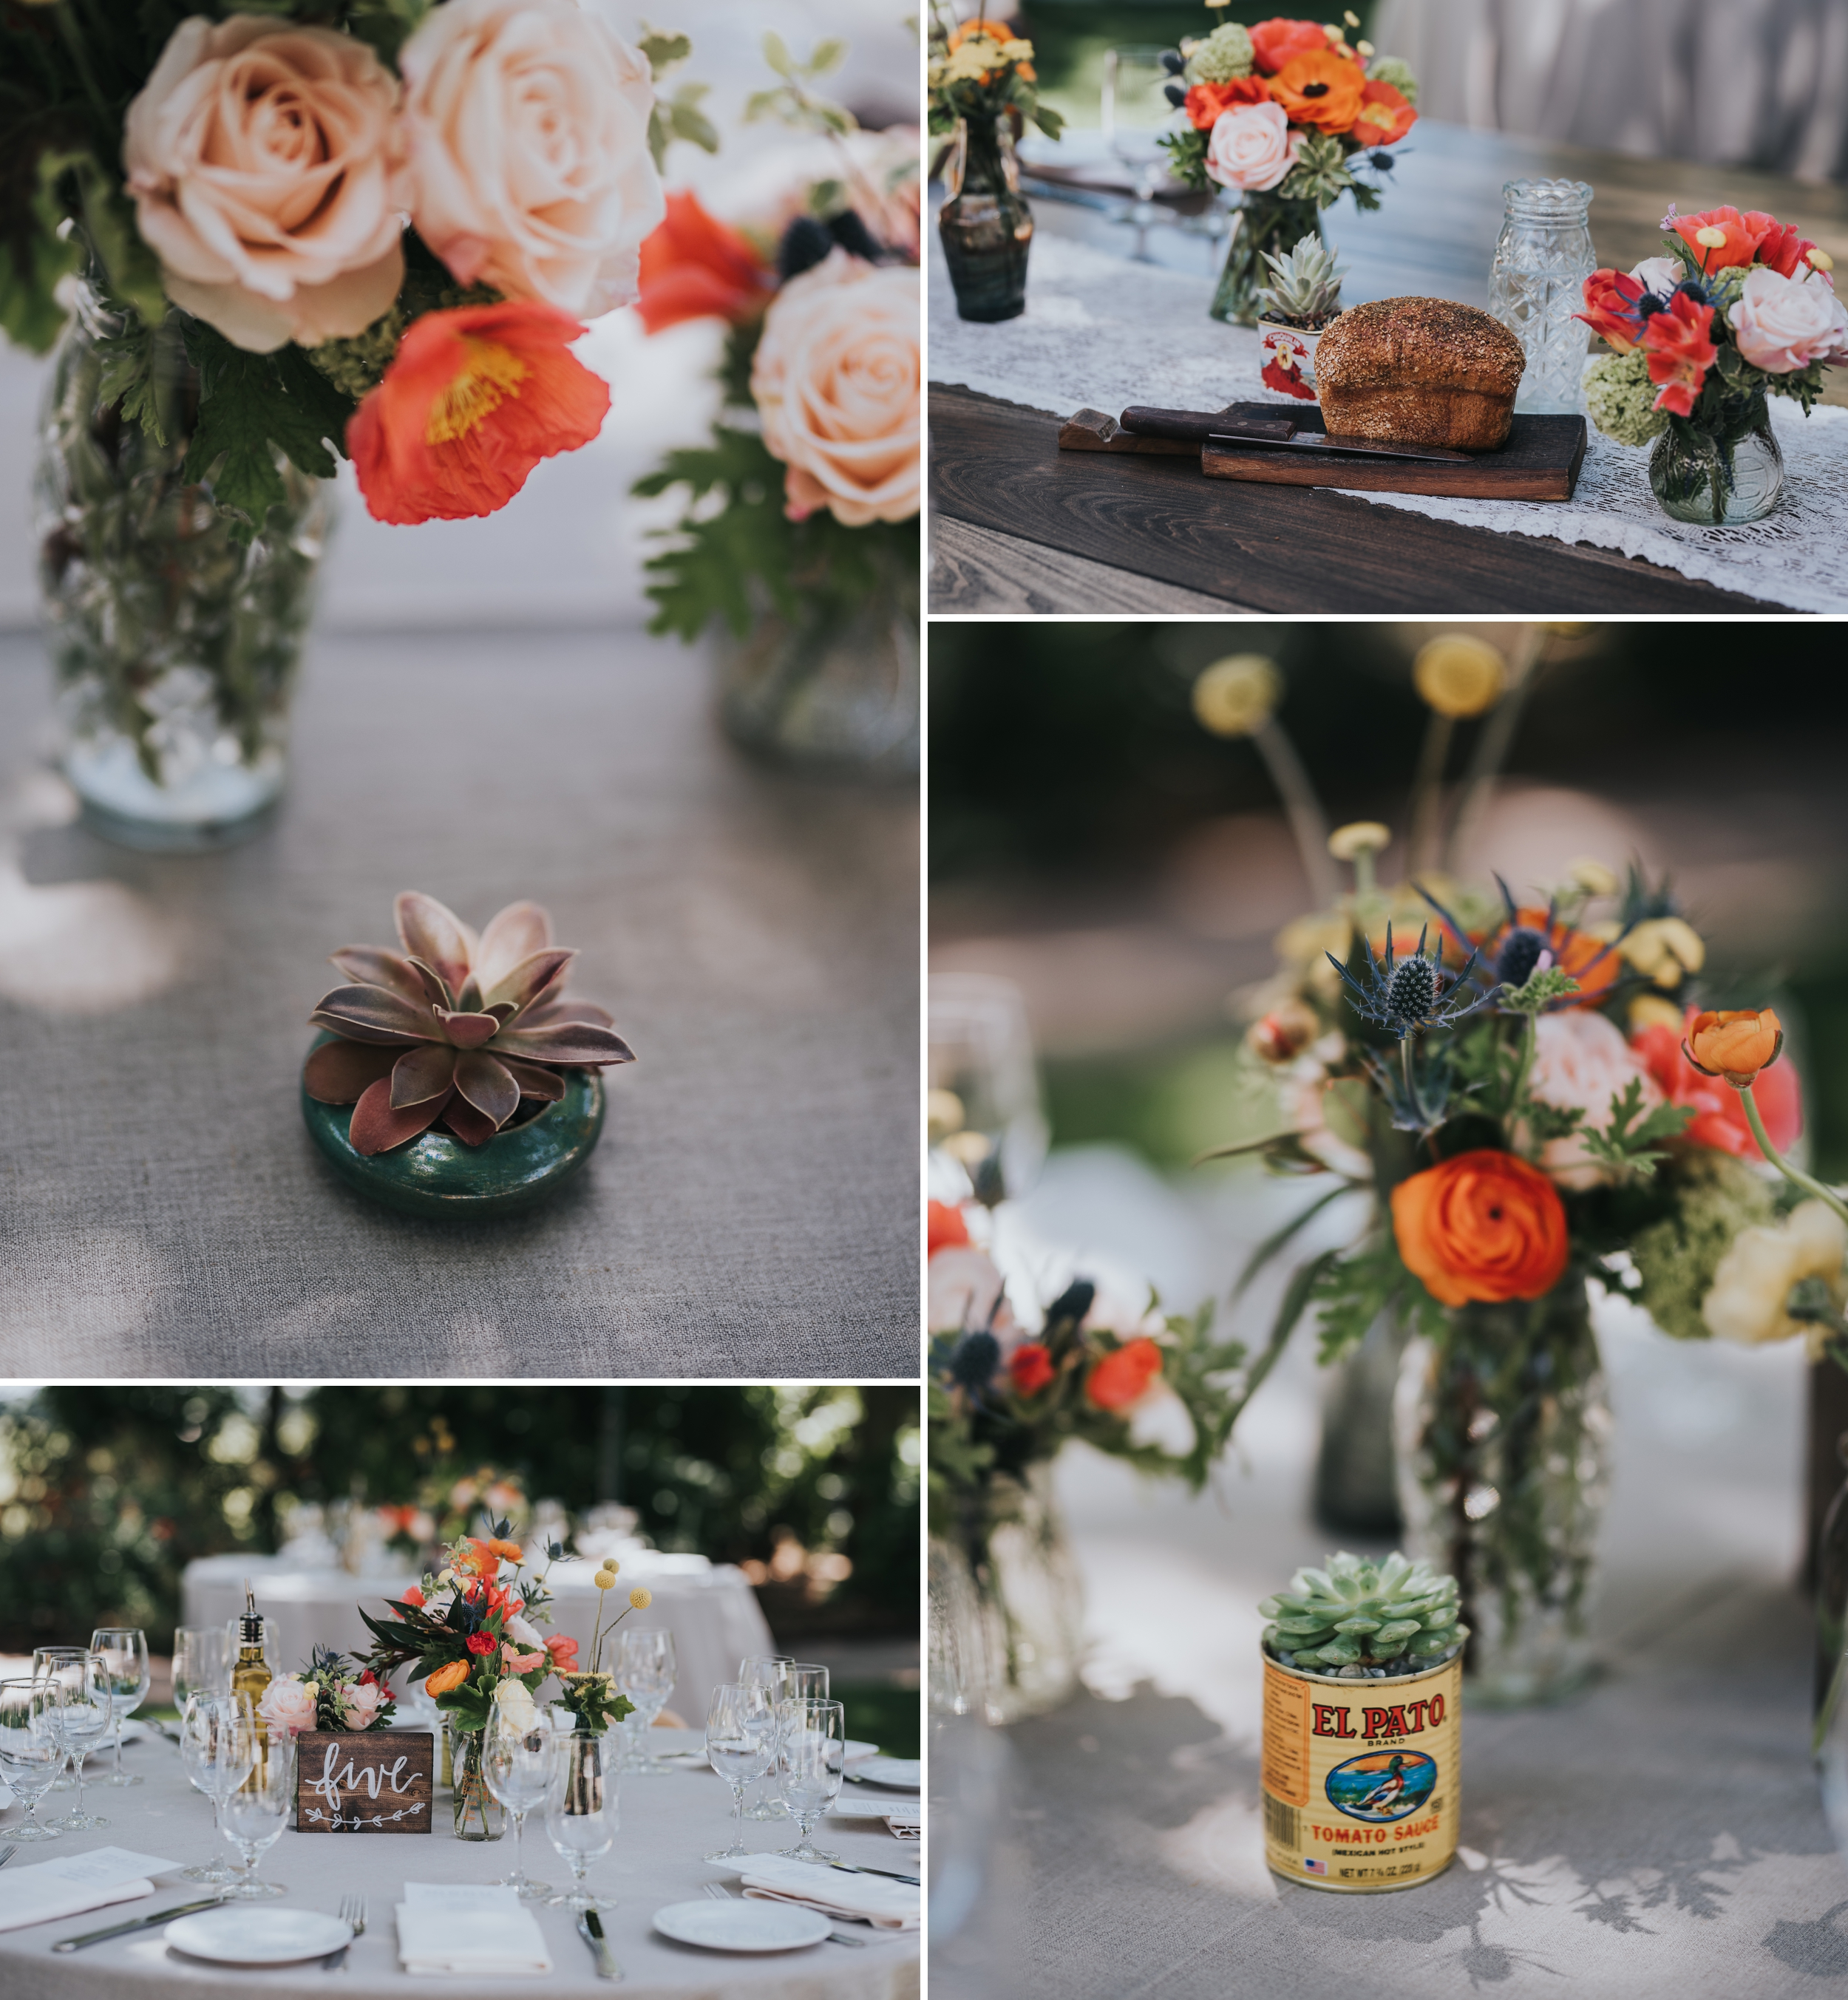 Ru's farm Wedding | Healdsburg CA | details | heard wedding consulting | Catherine Scott Flowers